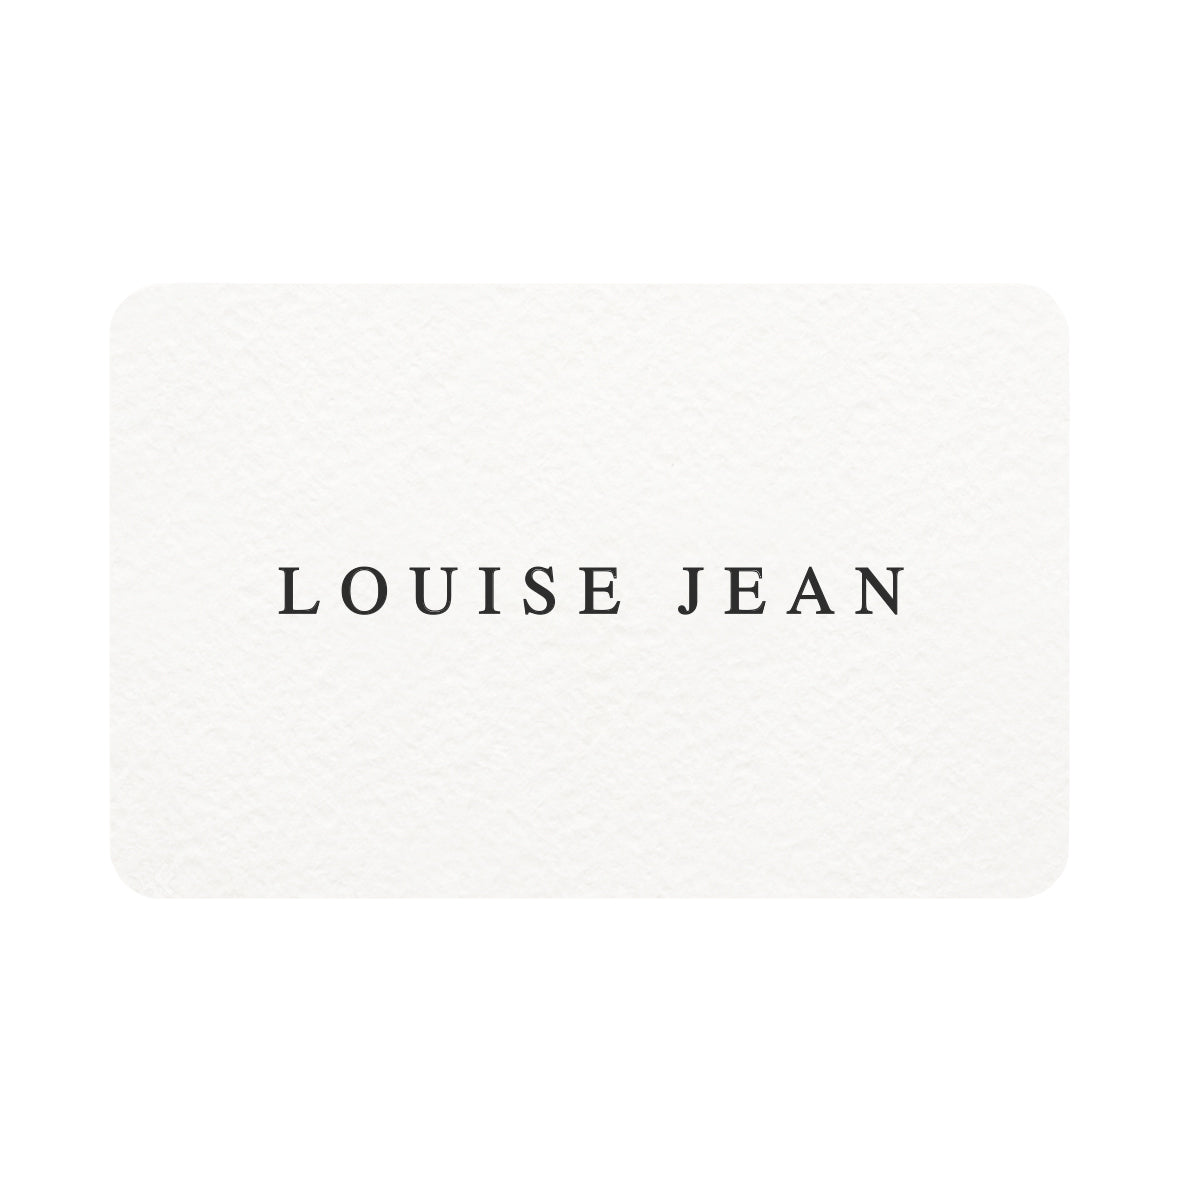 LOUISE JEAN gift card